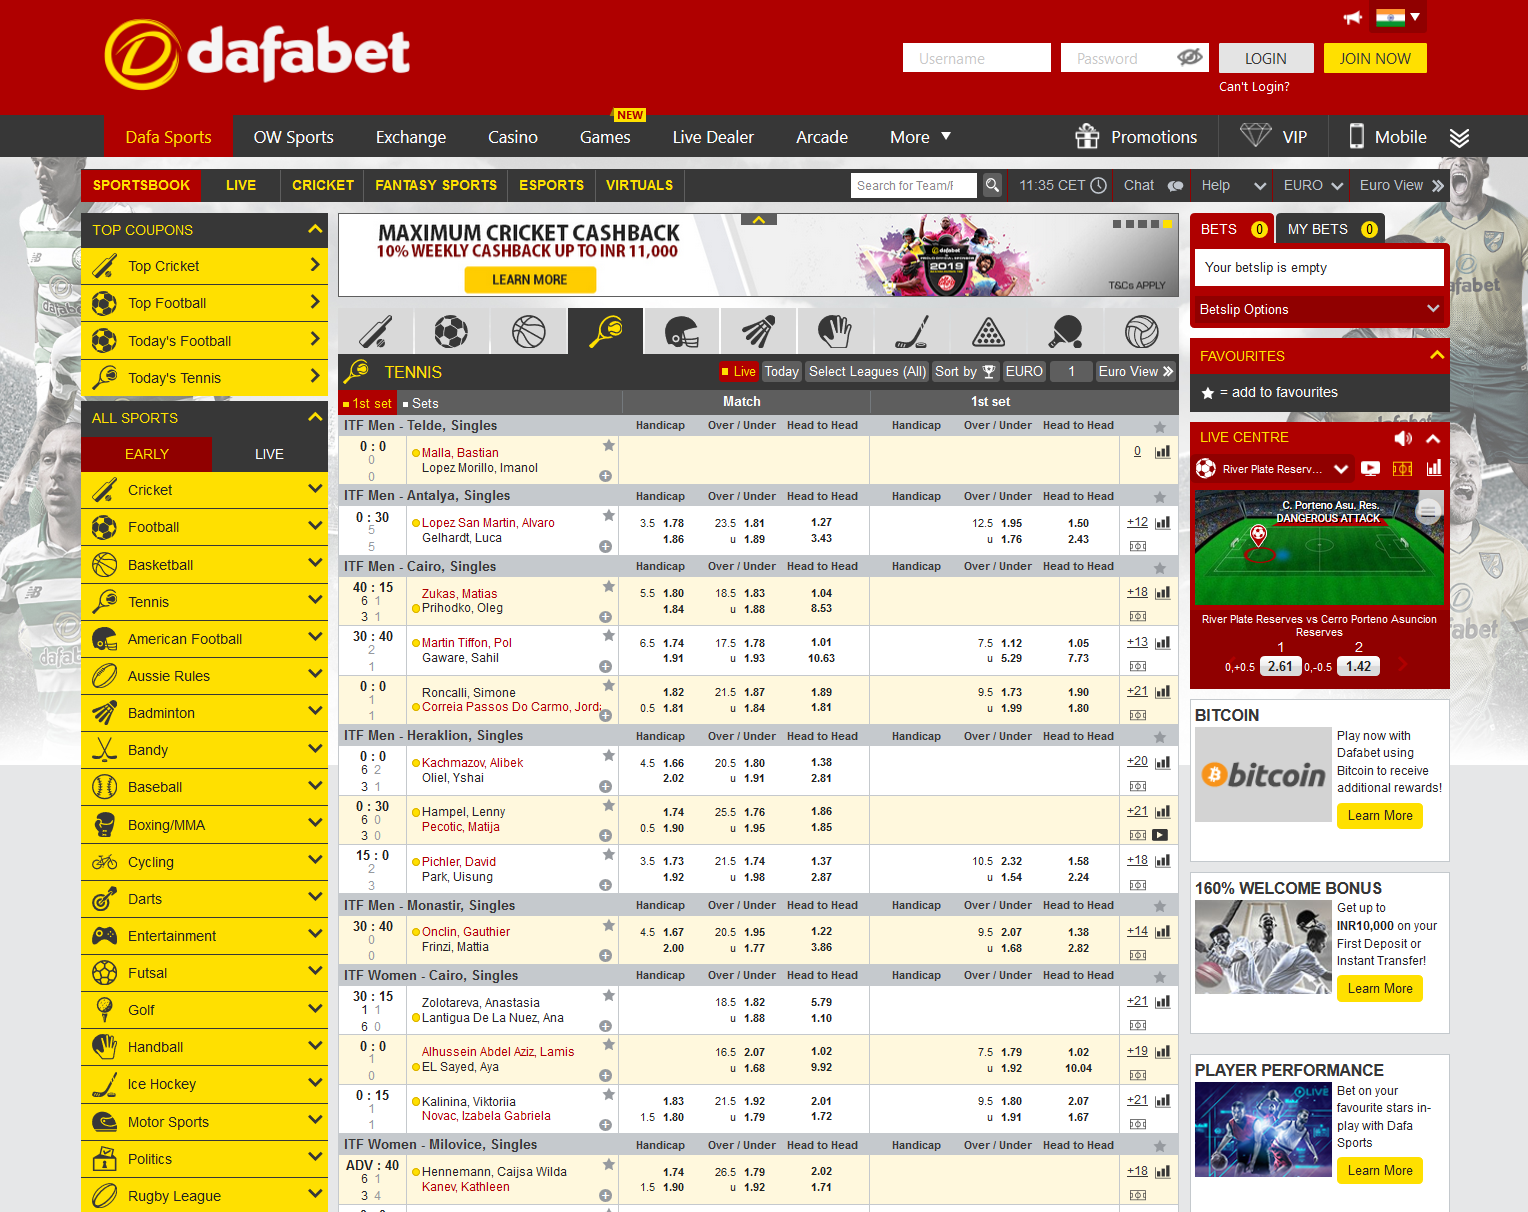 The odds section at Dafabet showing you all the tennis markets available.